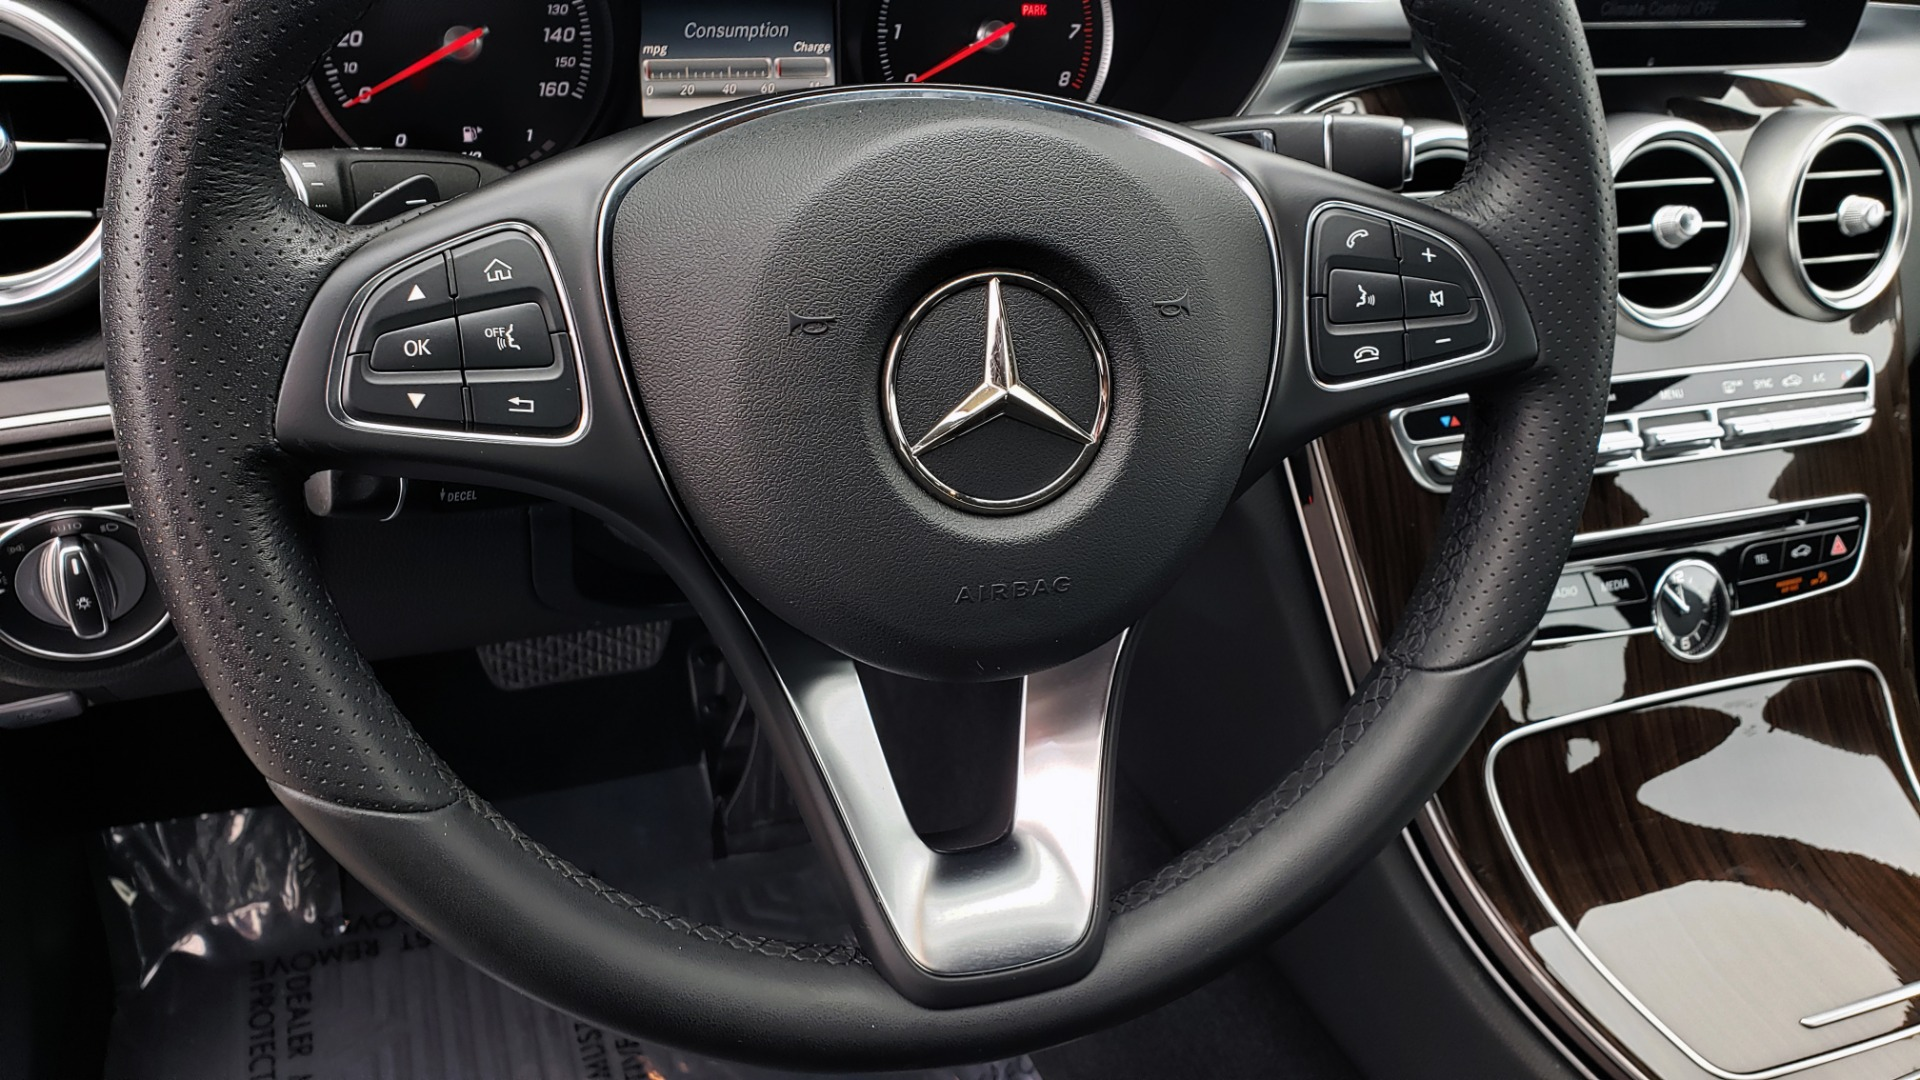 Used 2018 Mercedes-Benz C-CLASS C 300 PREMIUM / 2.0L TURBO / PANO-ROOF / KEYLESS-GO / REARVIEW for sale Sold at Formula Imports in Charlotte NC 28227 32